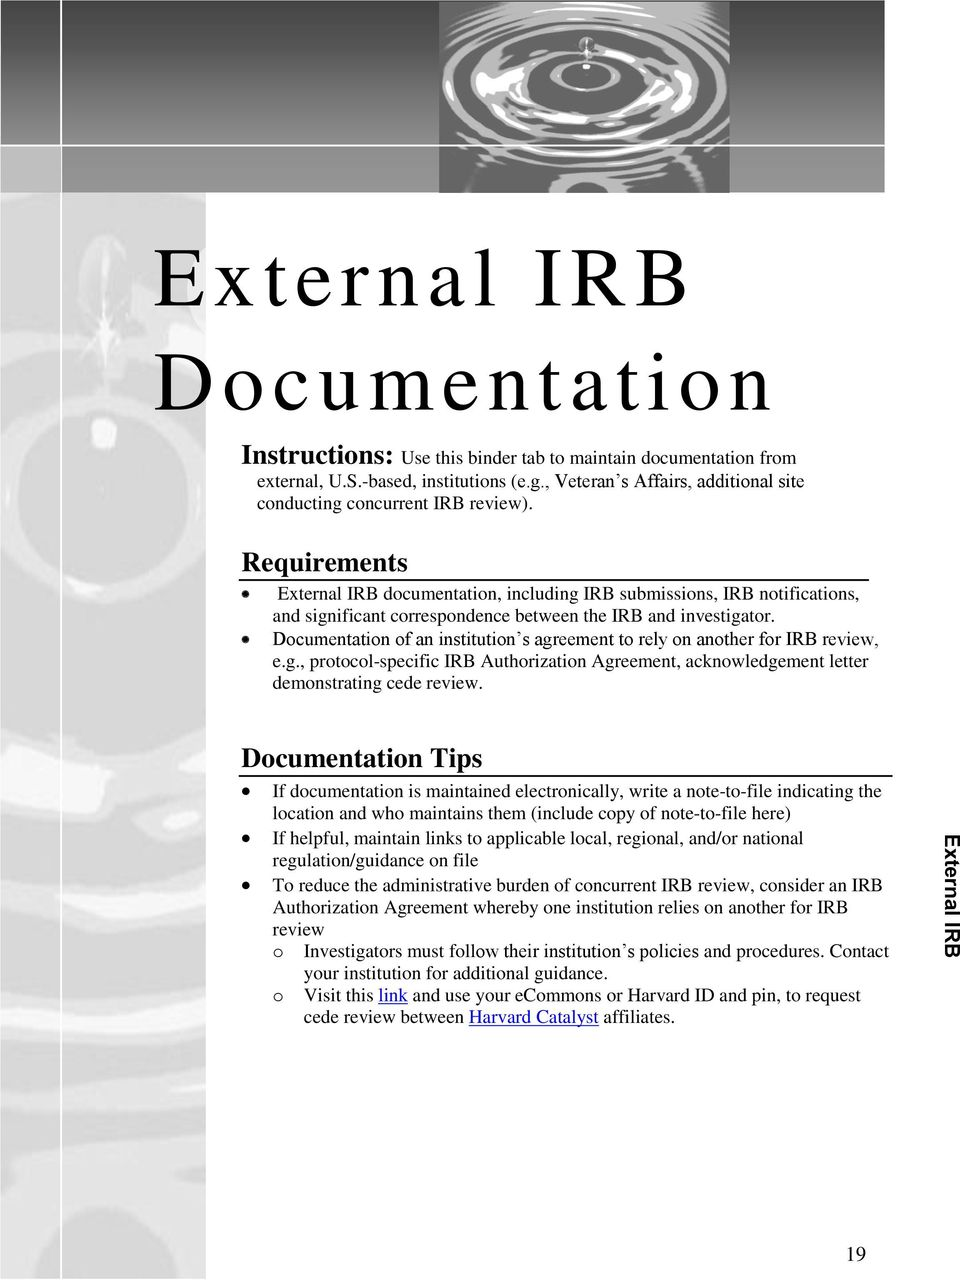 External IRB documentation, including IRB submissions, IRB notifications, and significant correspondence between the IRB and investigator.